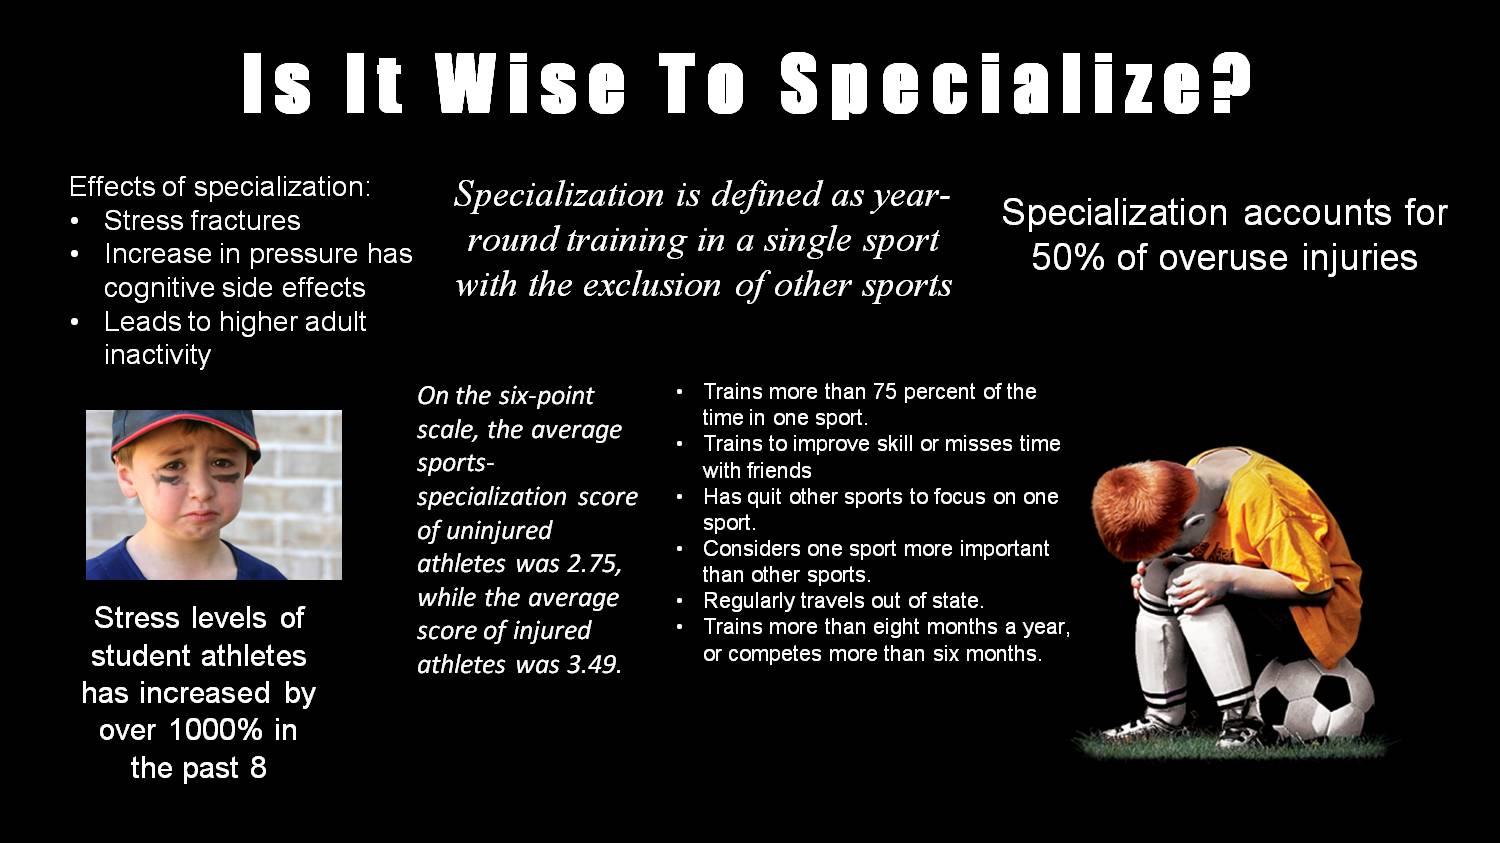 Is It Wise To Specialize? by lrq32